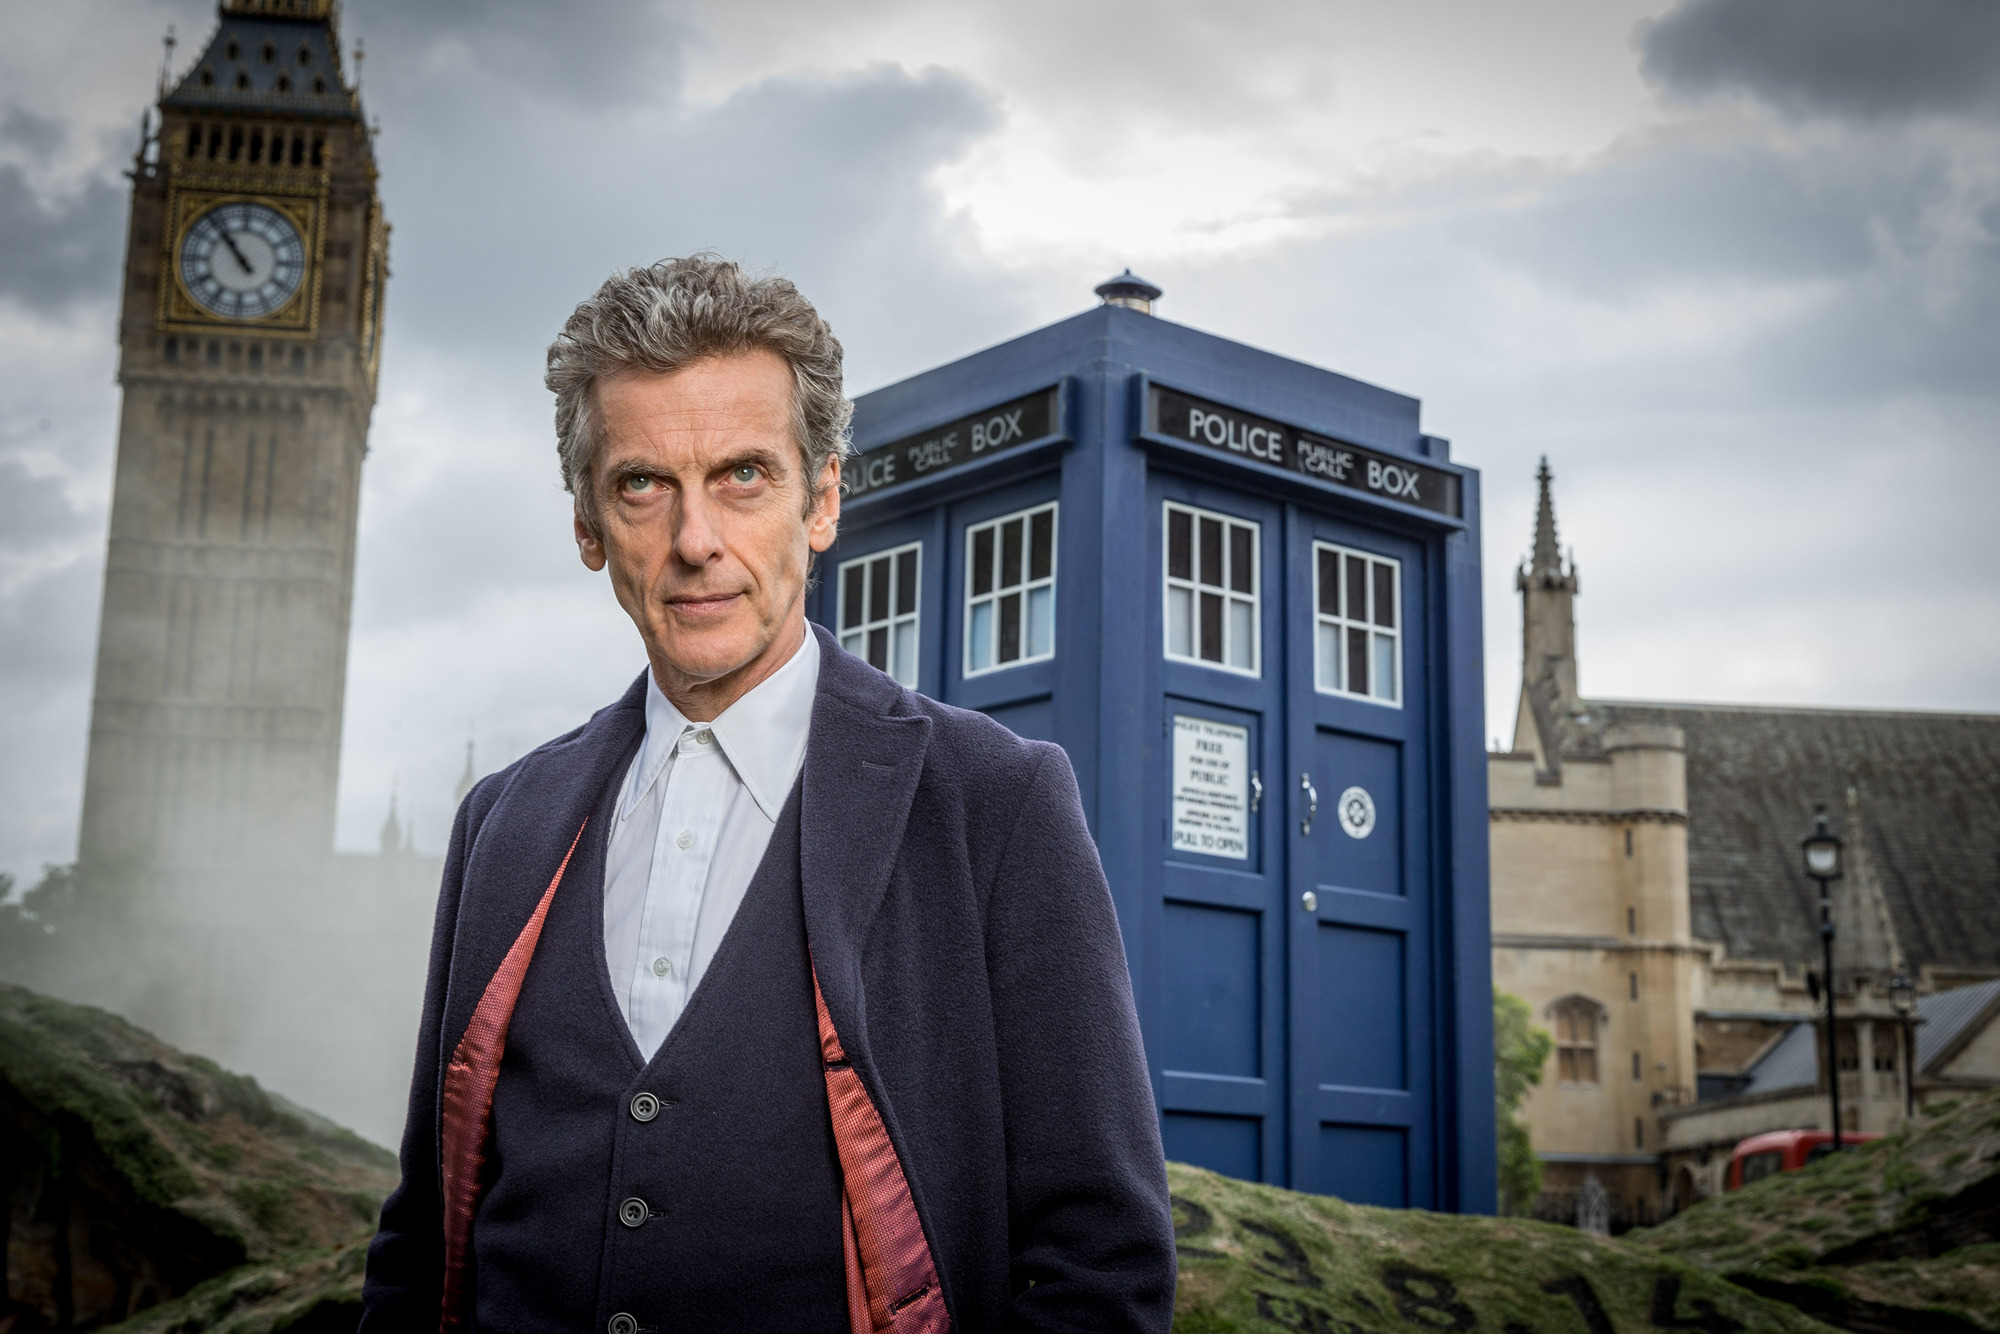 Doctor Who: Peter Capaldi's Doctor Who debut was a disappointment